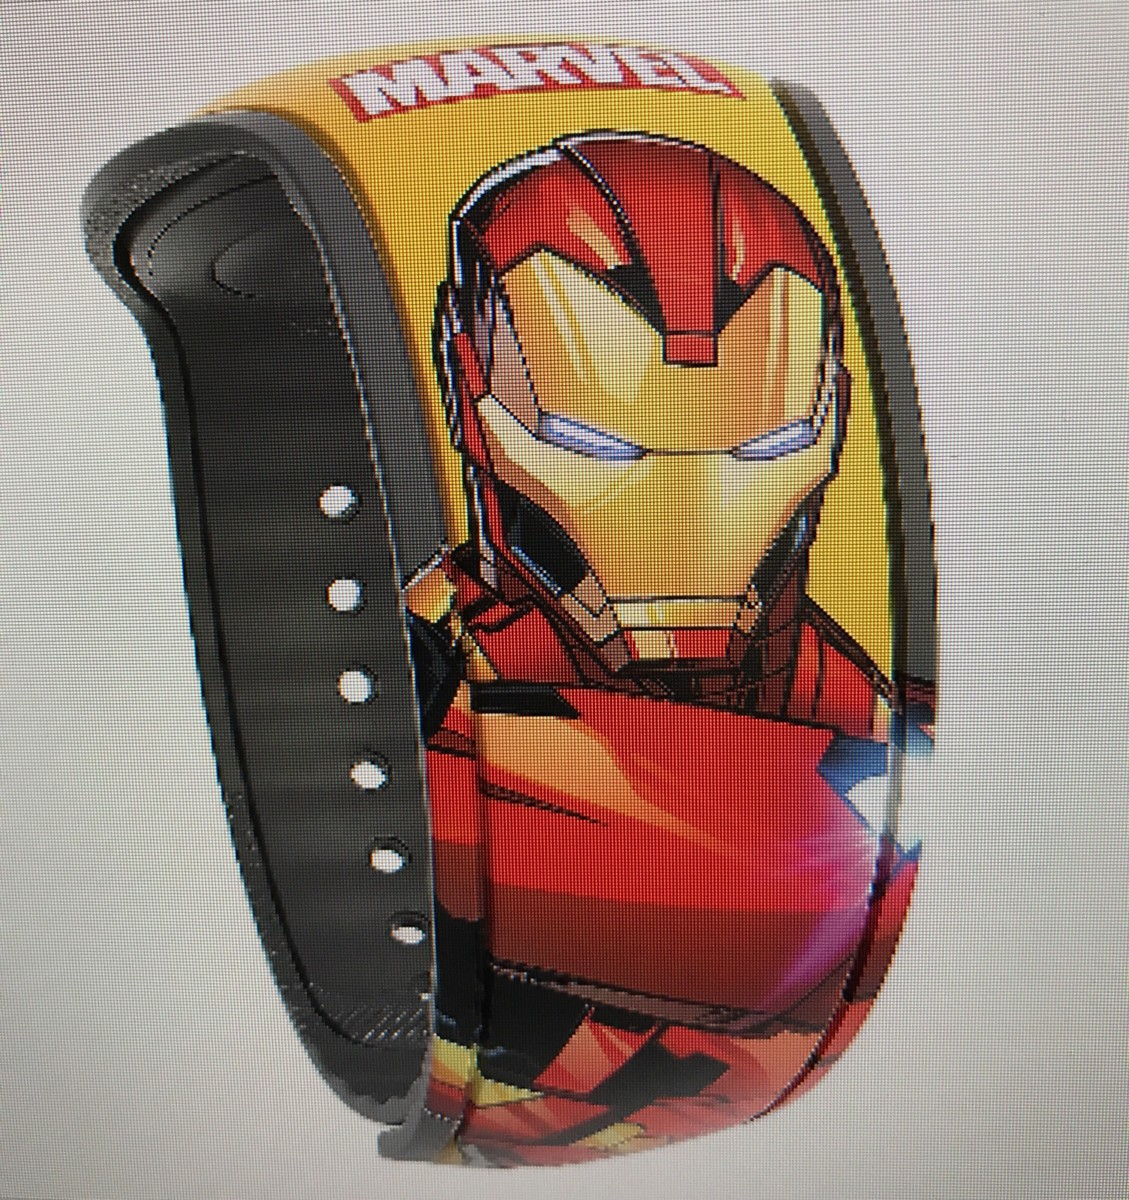 NEW! Avengers MagicBands Coming to Disney Parks September 22! 5